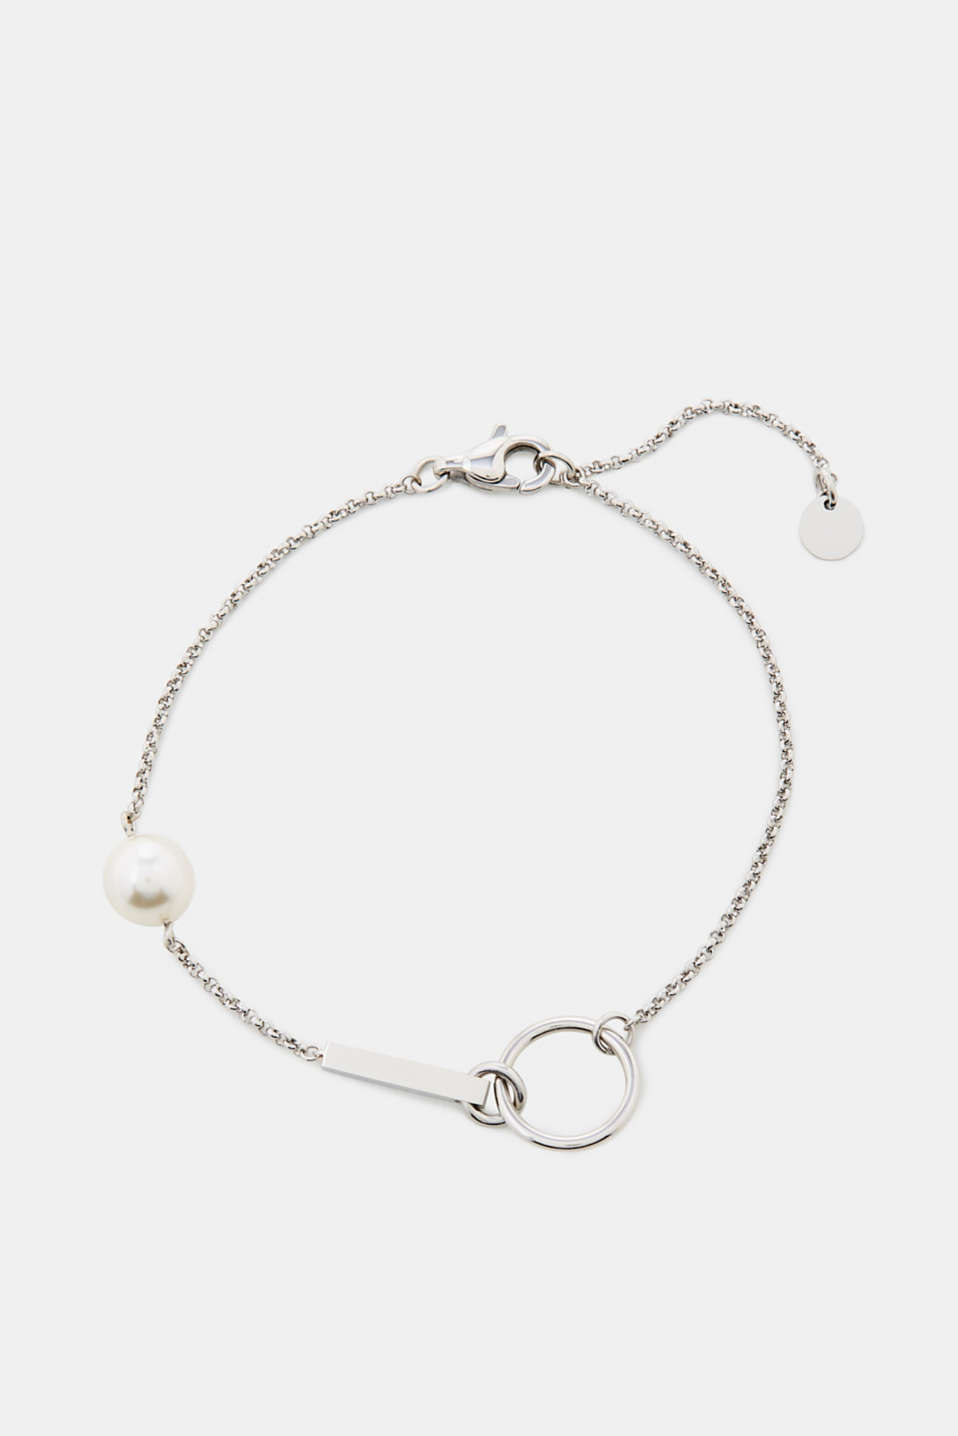 Esprit - Bracelet with a white bead, stainless steel